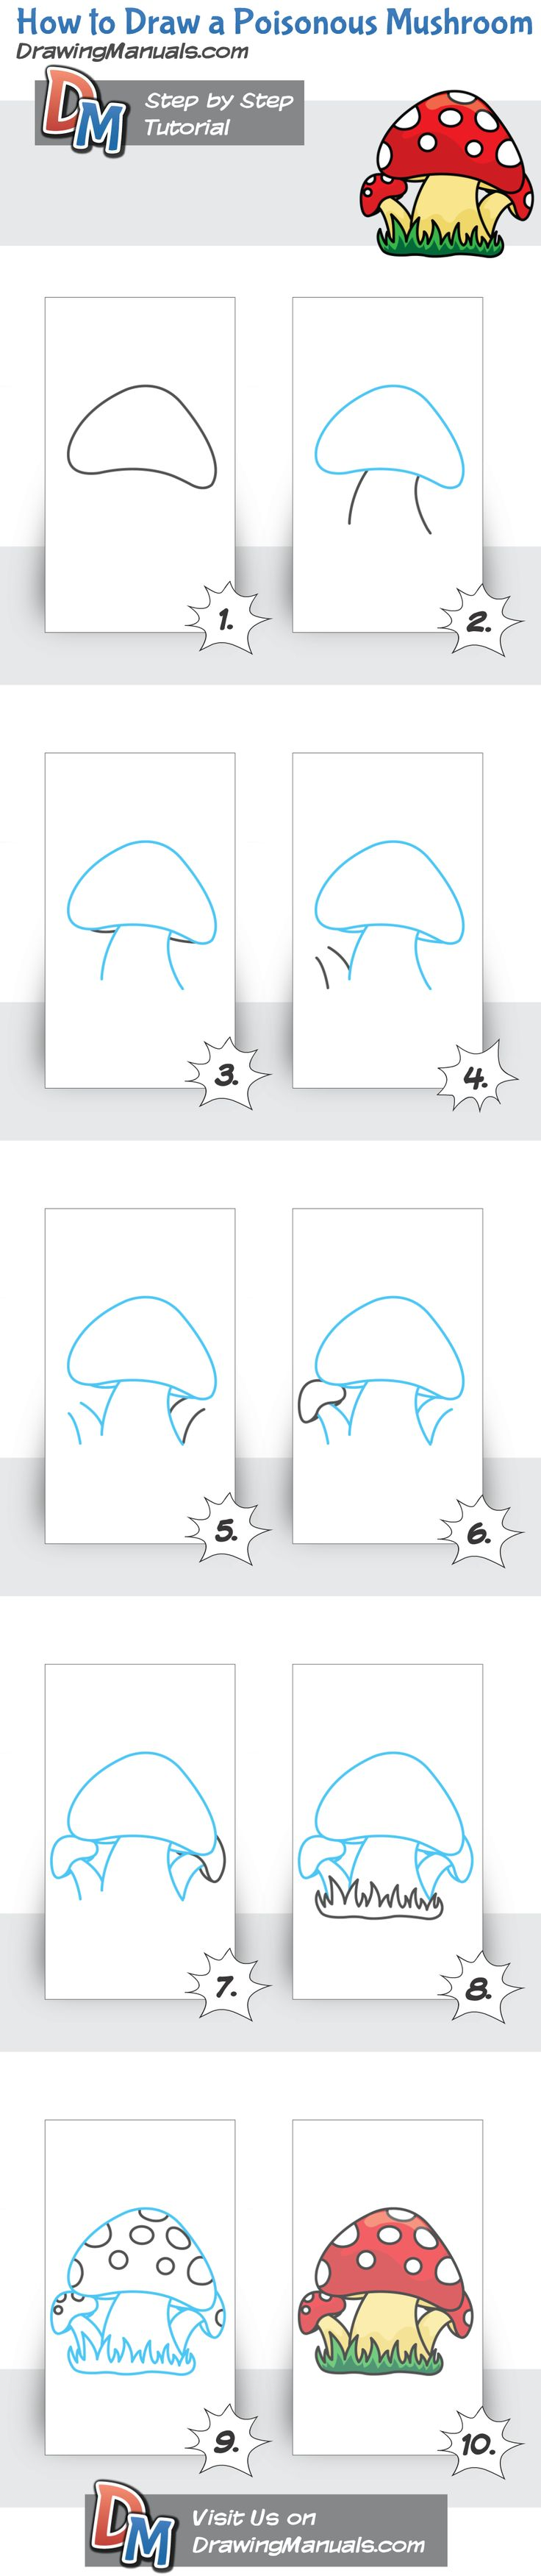 How To Draw A Poisonous Mushroom, Easy And Detailed Stepbystep Cartoon